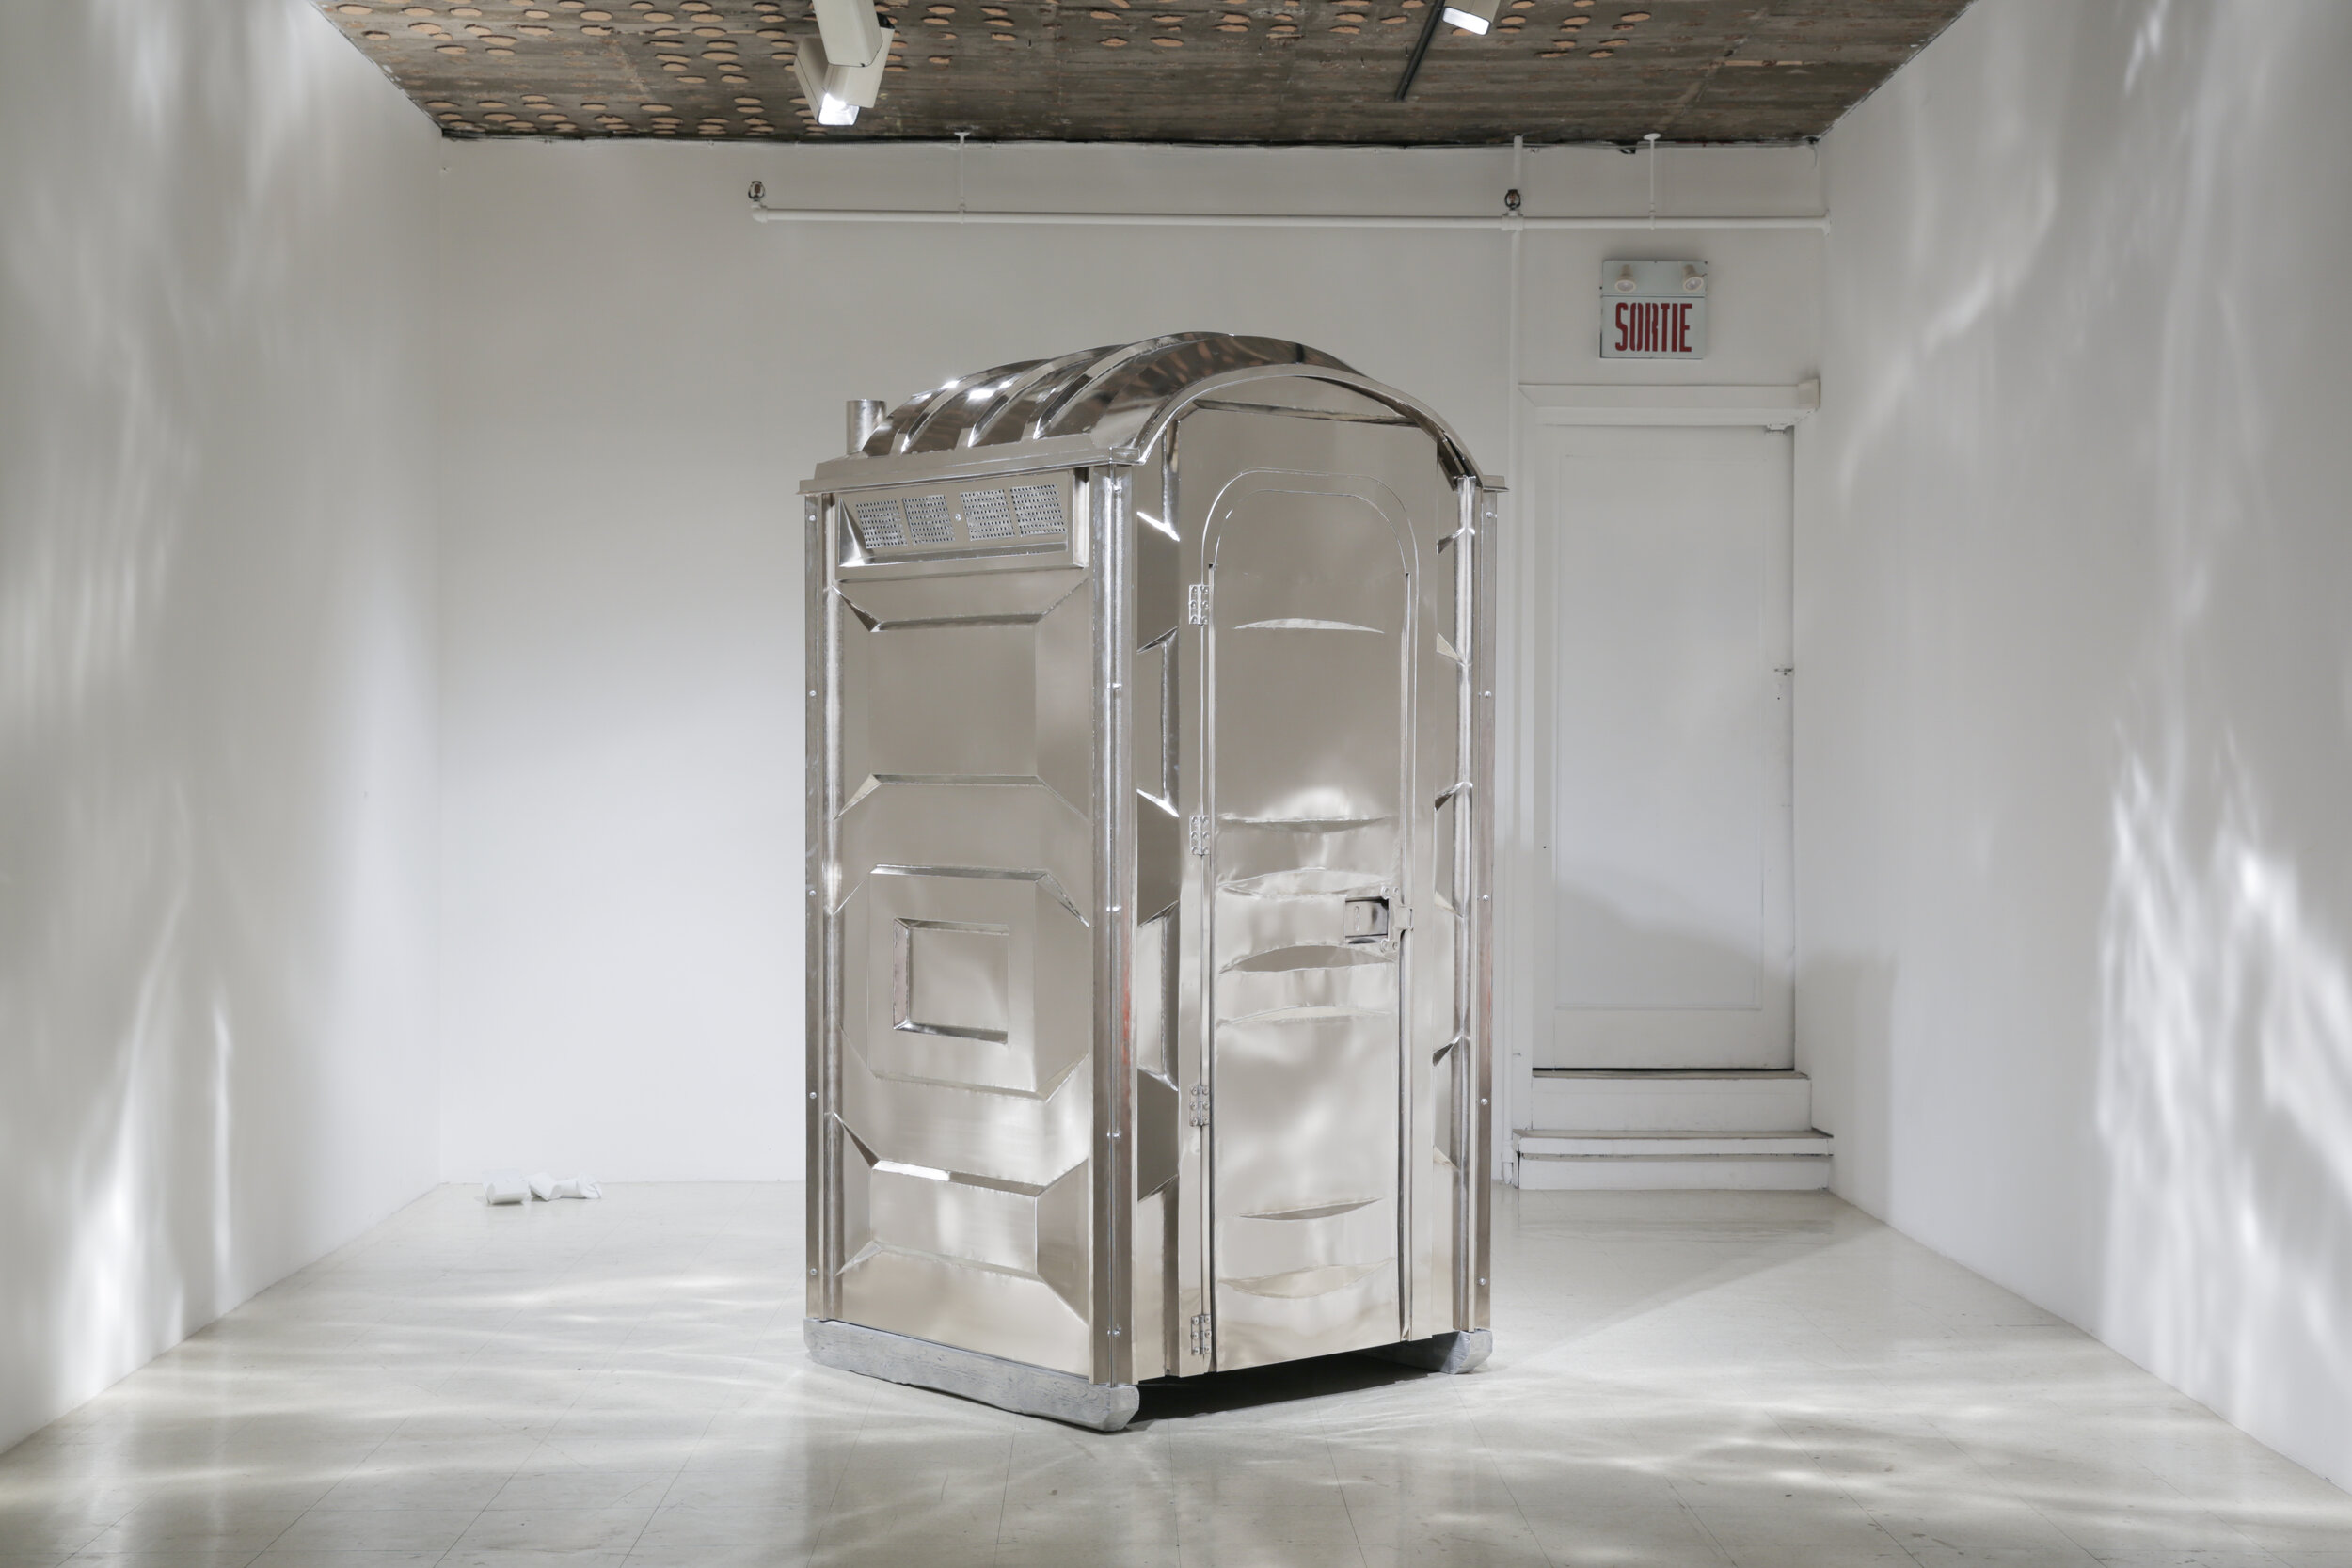 Zeke Moores,  Port-O-Potty , 2011, Nickel plated steel and cast aluminum, 84 in x 46 in x 46in, courtesy of Art Mûr